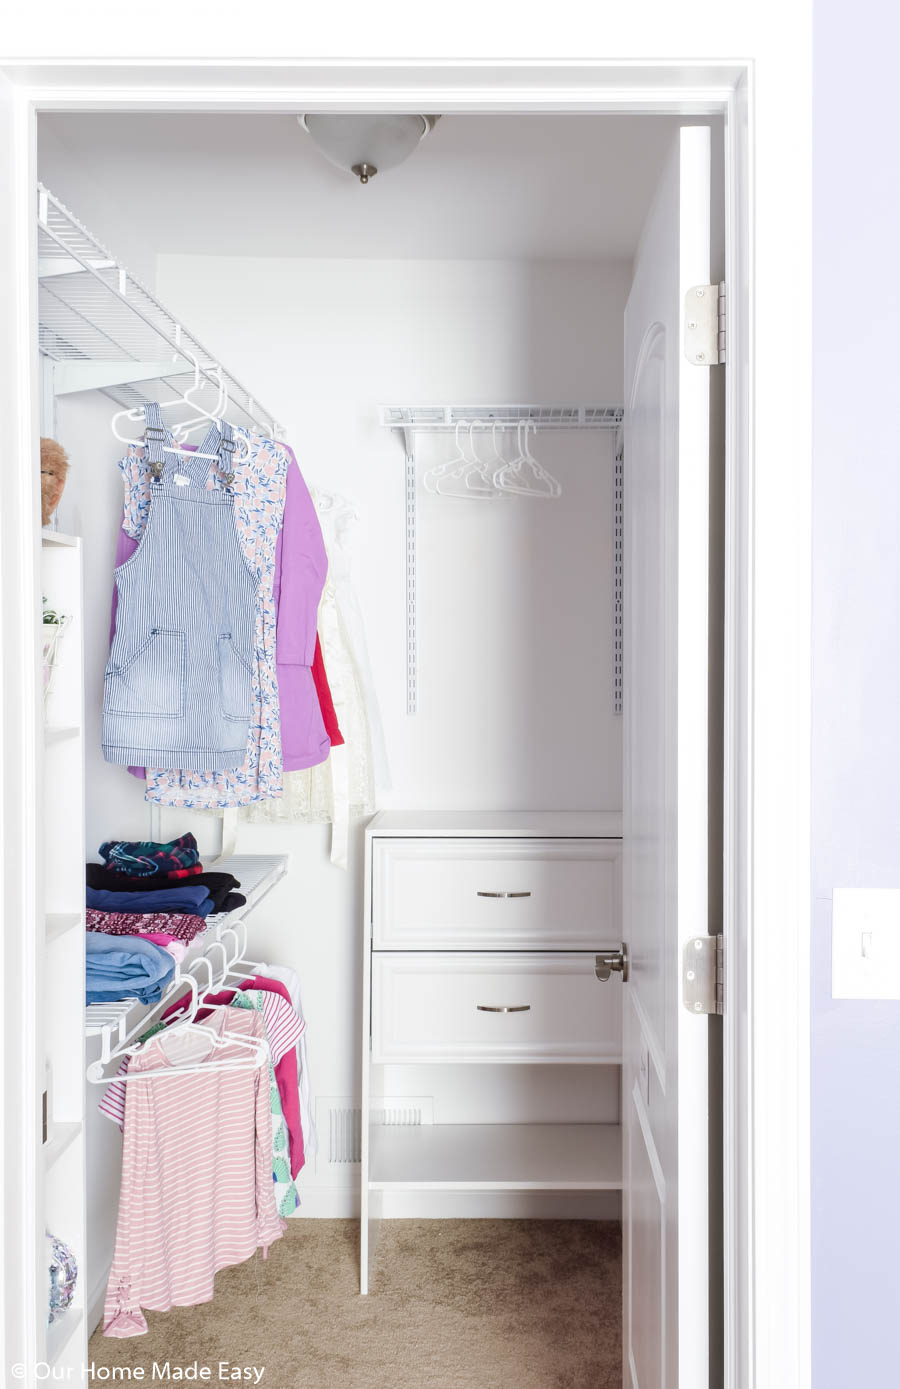 It feels so great to have an organized closet with plenty of storage!